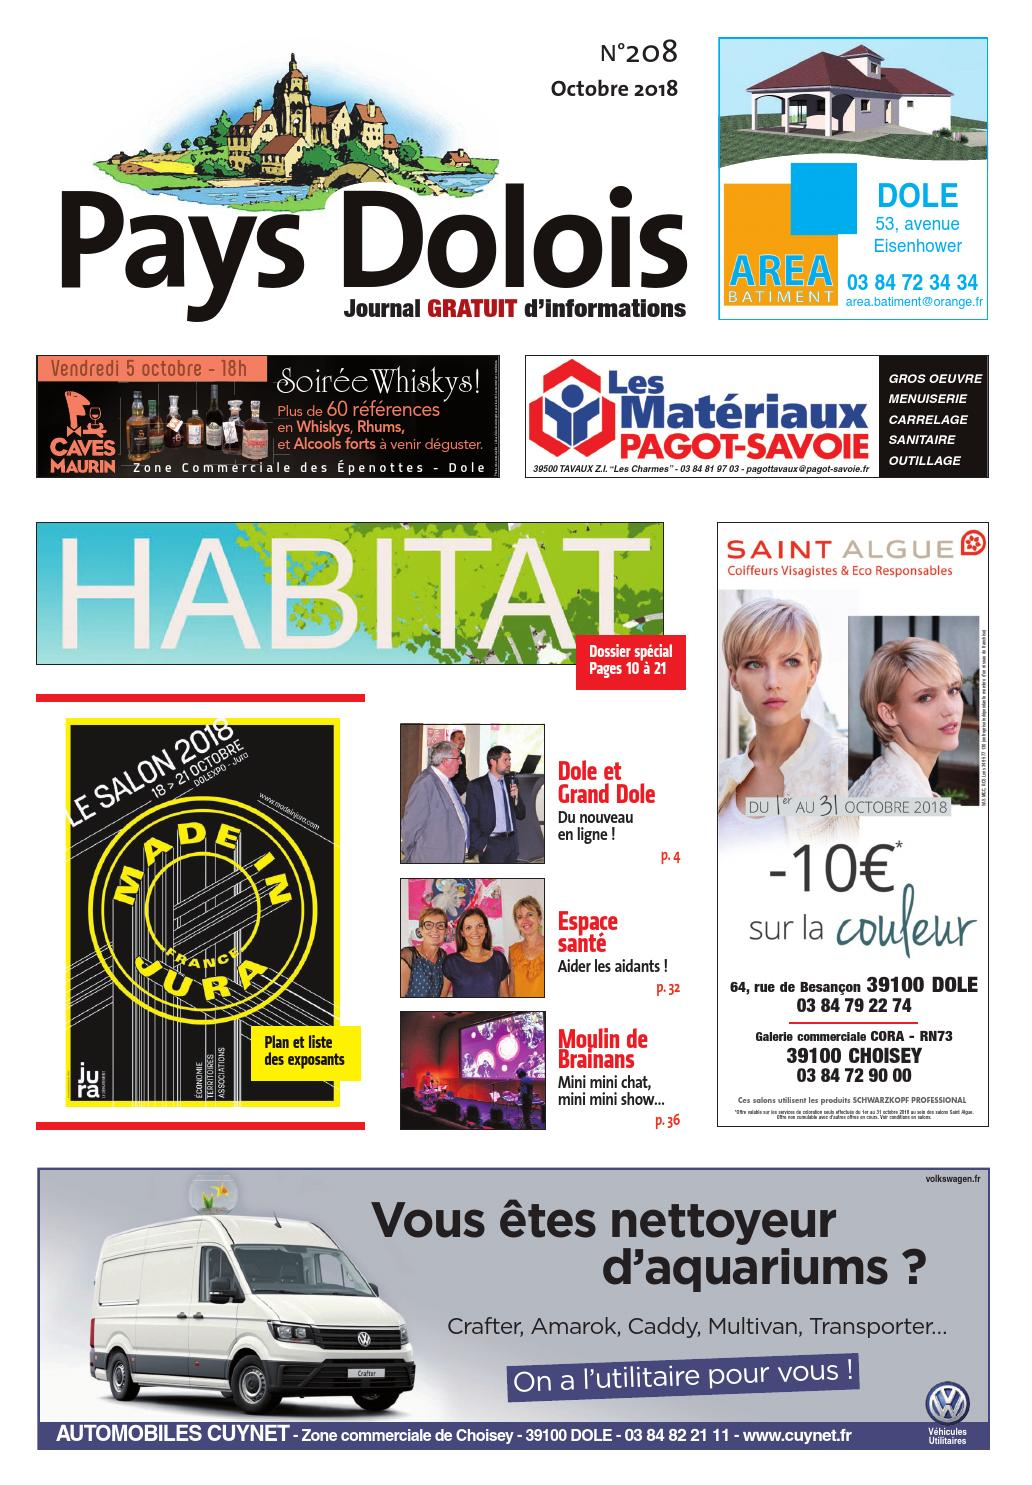 Pays Dolois 208 by PAOH - issuu 47e1f8f0d7ff